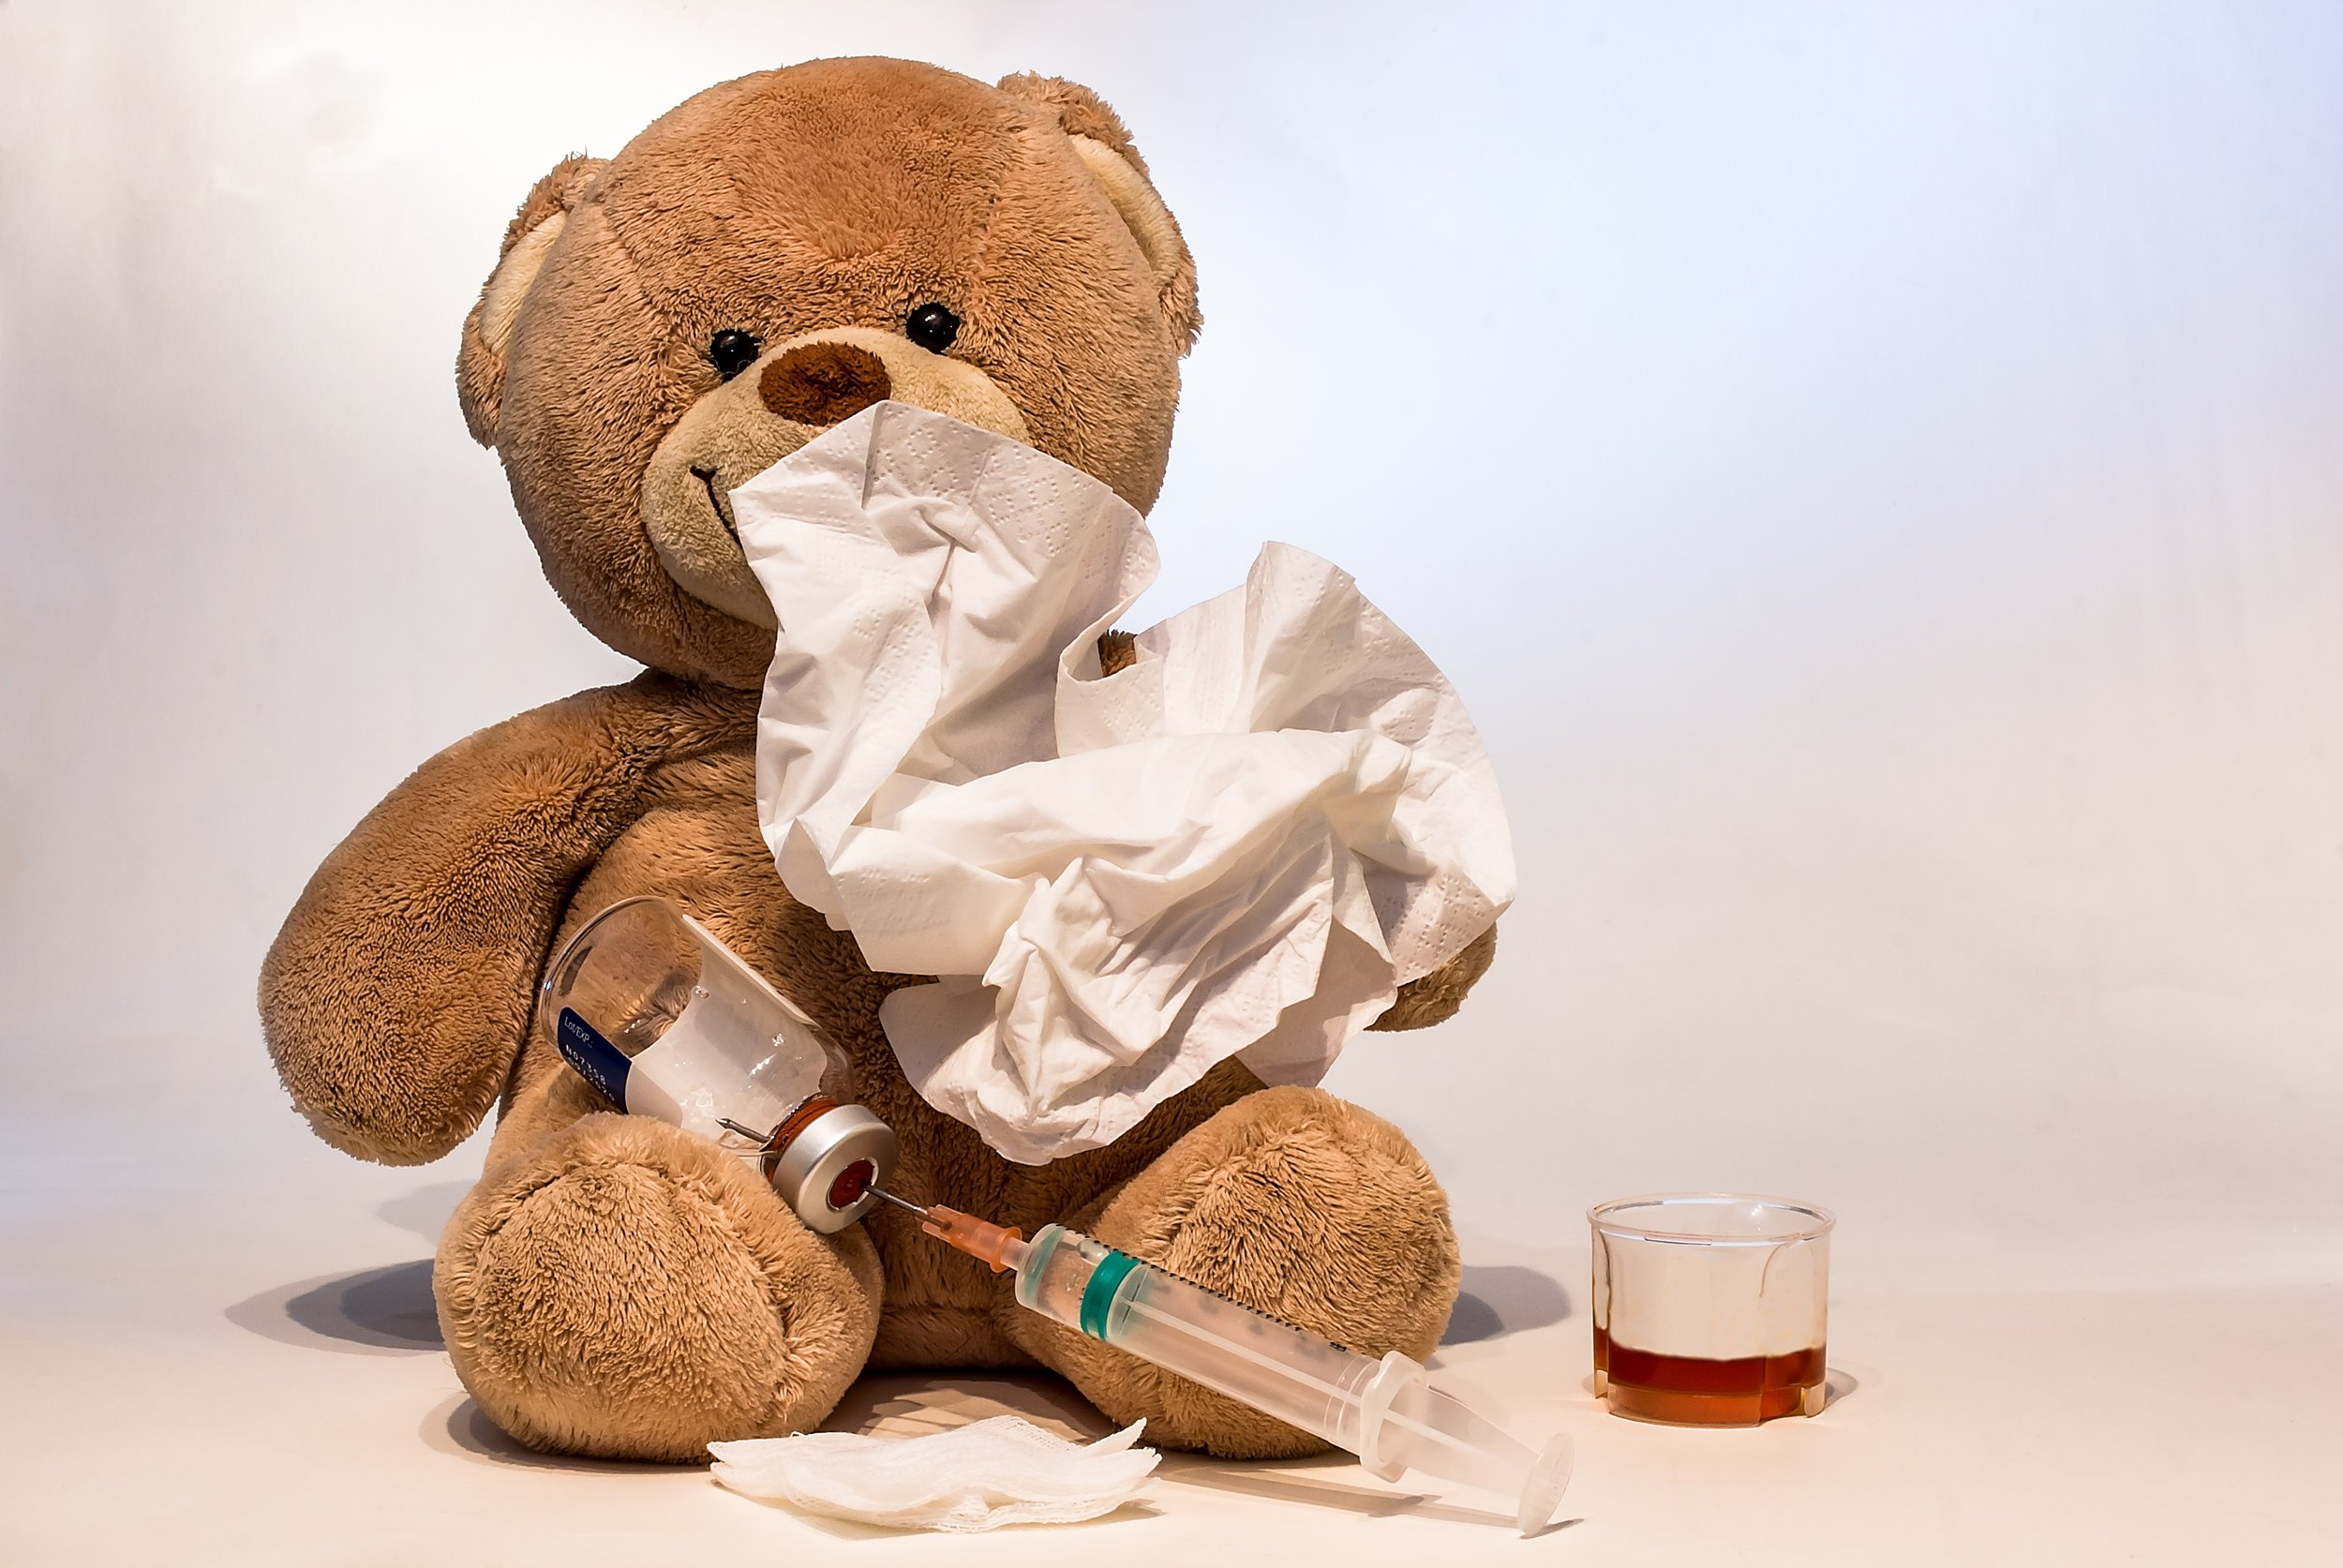 Oregon flu vaccination rates for children were the same in the 2015-16 and 2016-17 seasons, despite the lack of FluMist in 2016-17, according to a new Oregon Health Authority study. ( Pixabay.com photo )